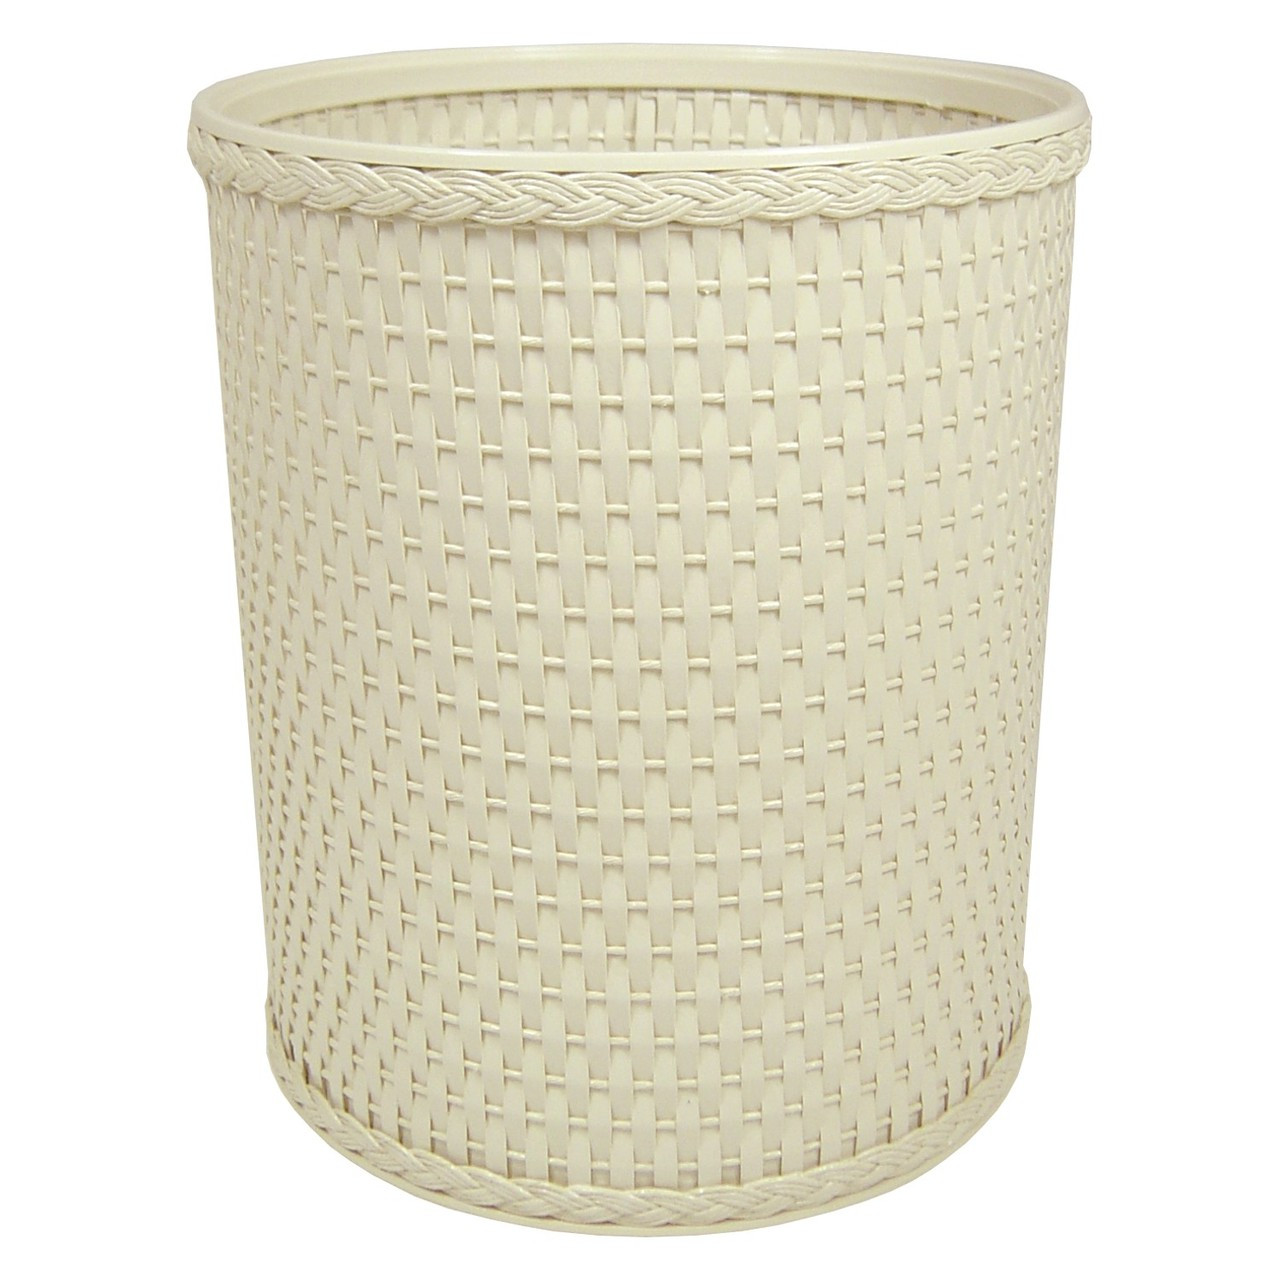 Chelsea Wicker Round Wastebasket Cream